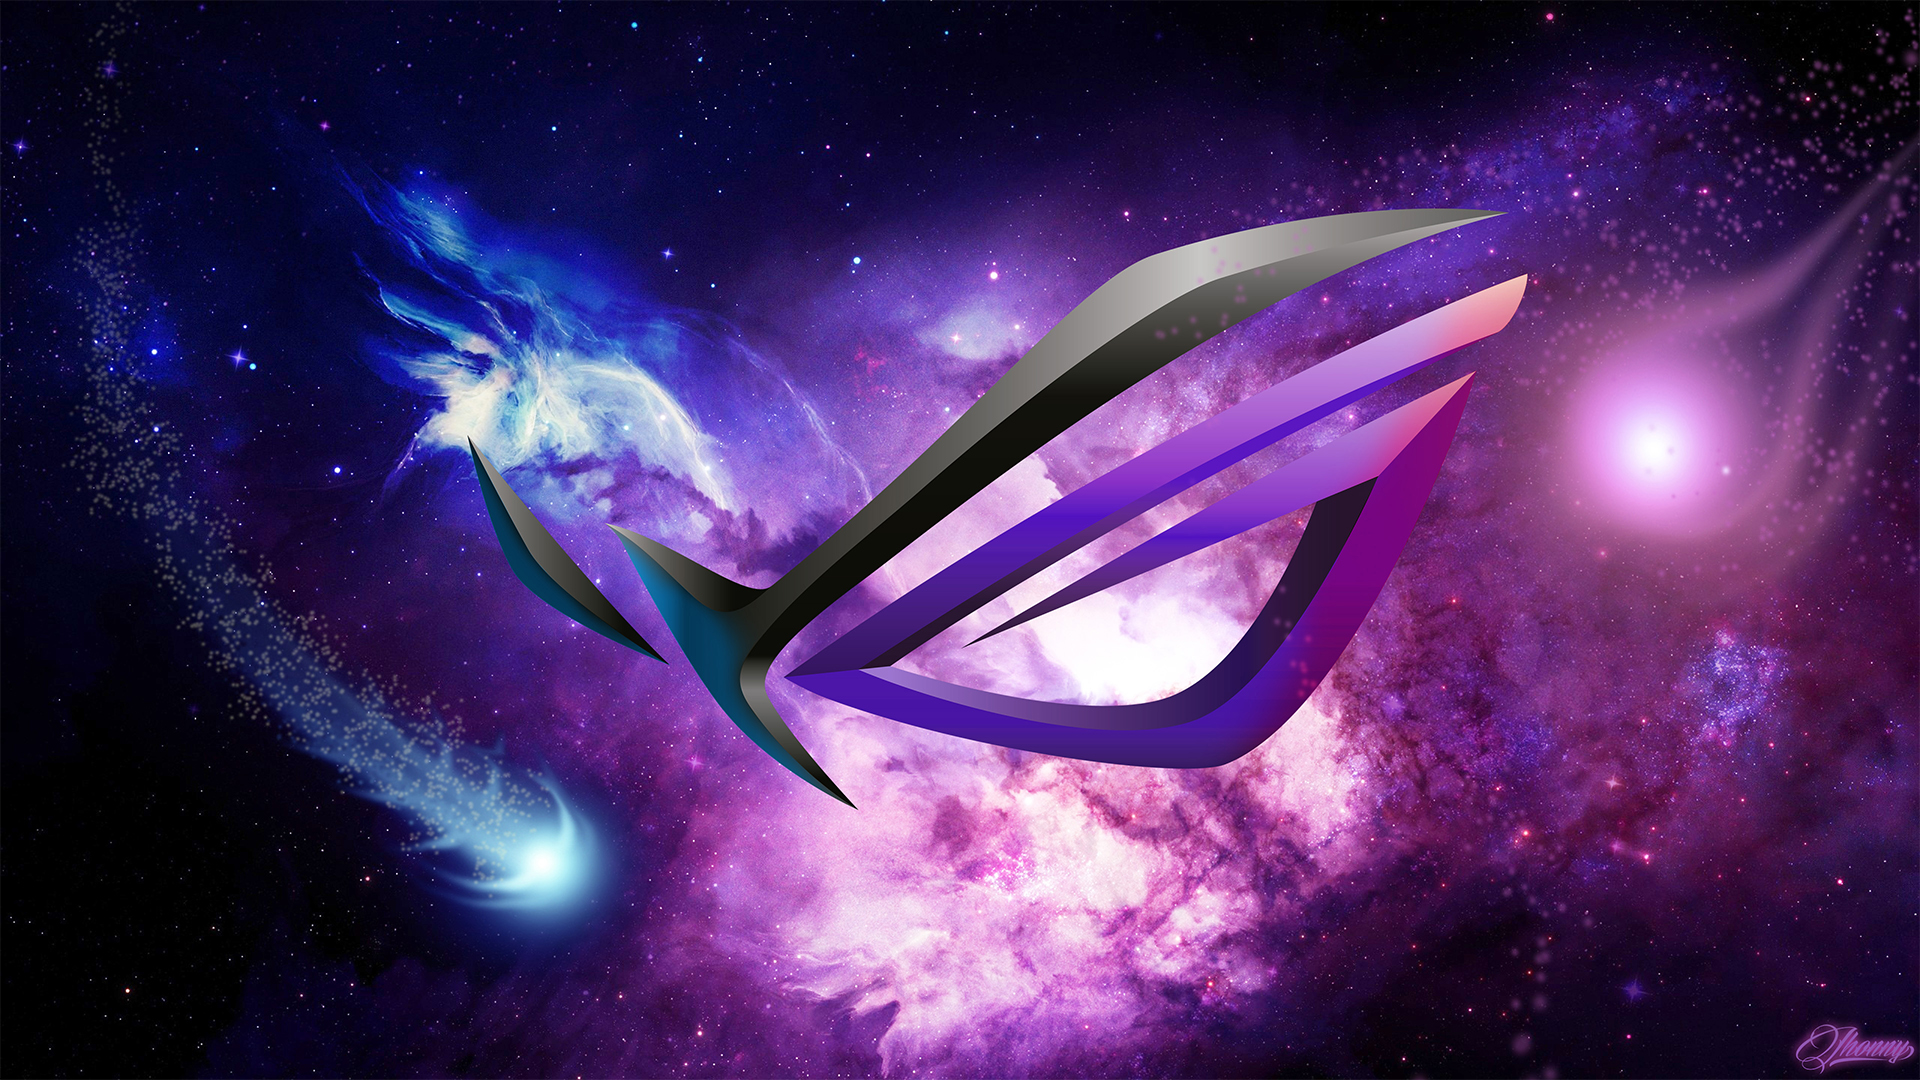 win an asus pb287q monitor: 2014 4k uhd wallpaper competition